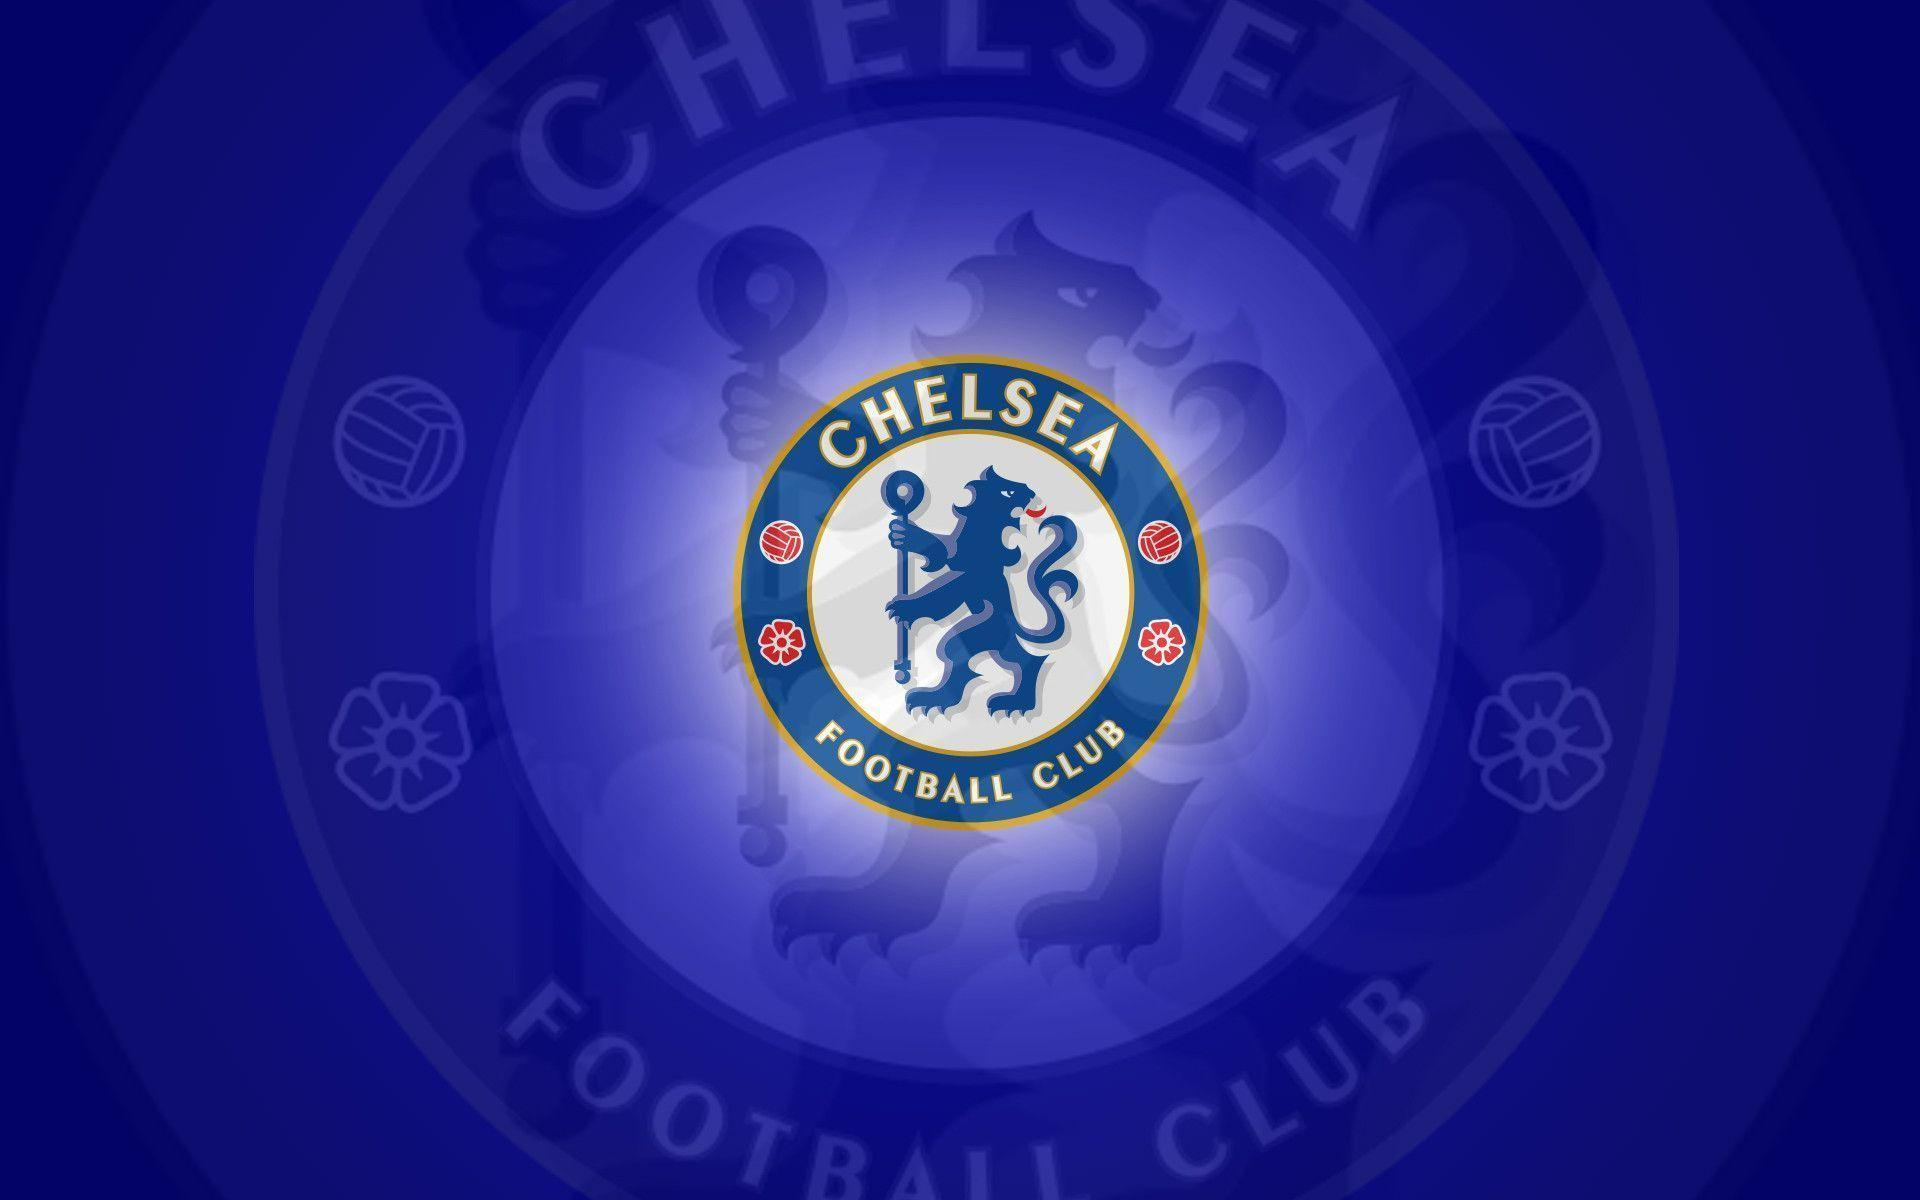 Chelsea Fc Wallpapers Top Free Chelsea Fc Backgrounds Wallpaperaccess